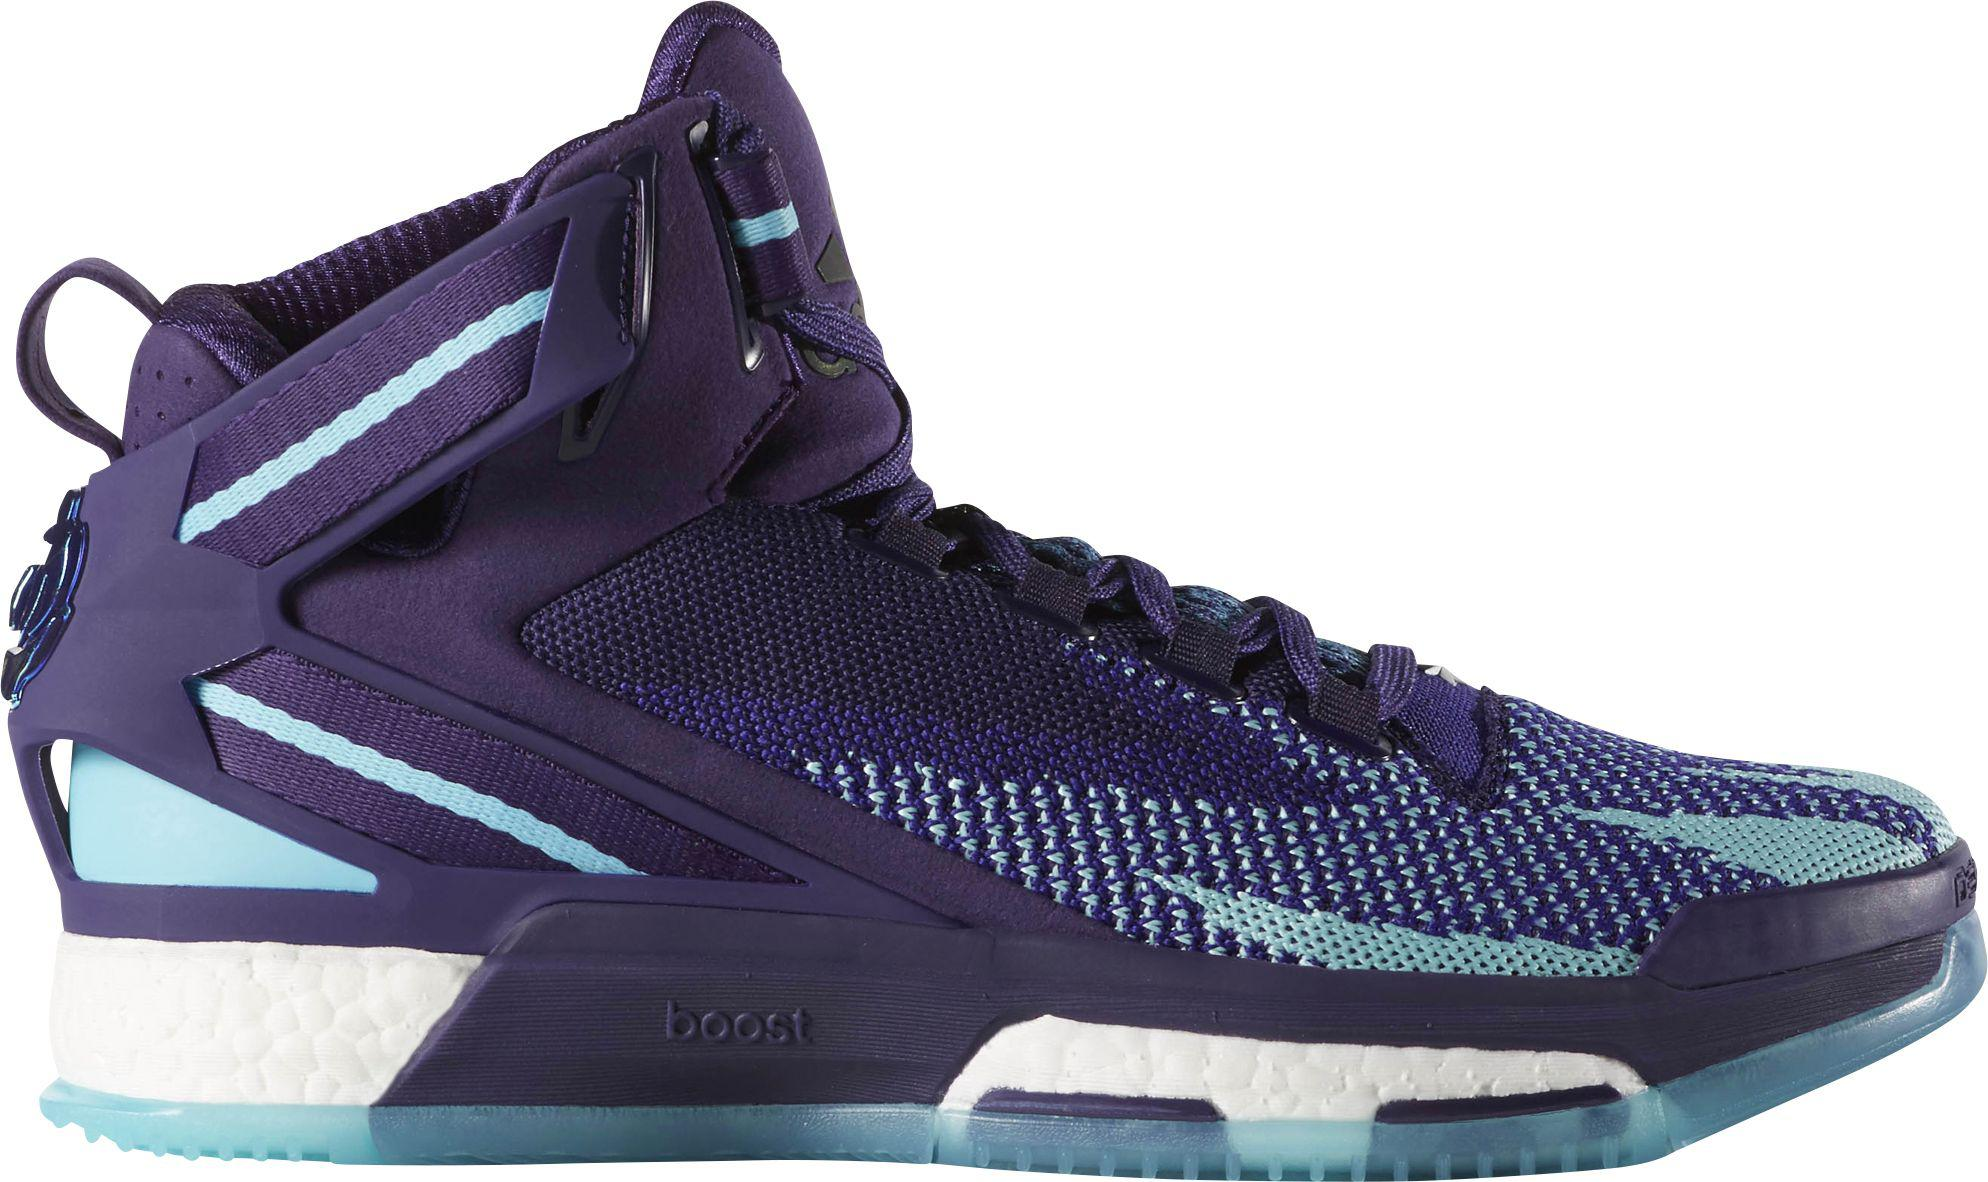 644174258870 Lyst - adidas Originals D Rose 6 Primeknit Boost Basketball Shoes in ...